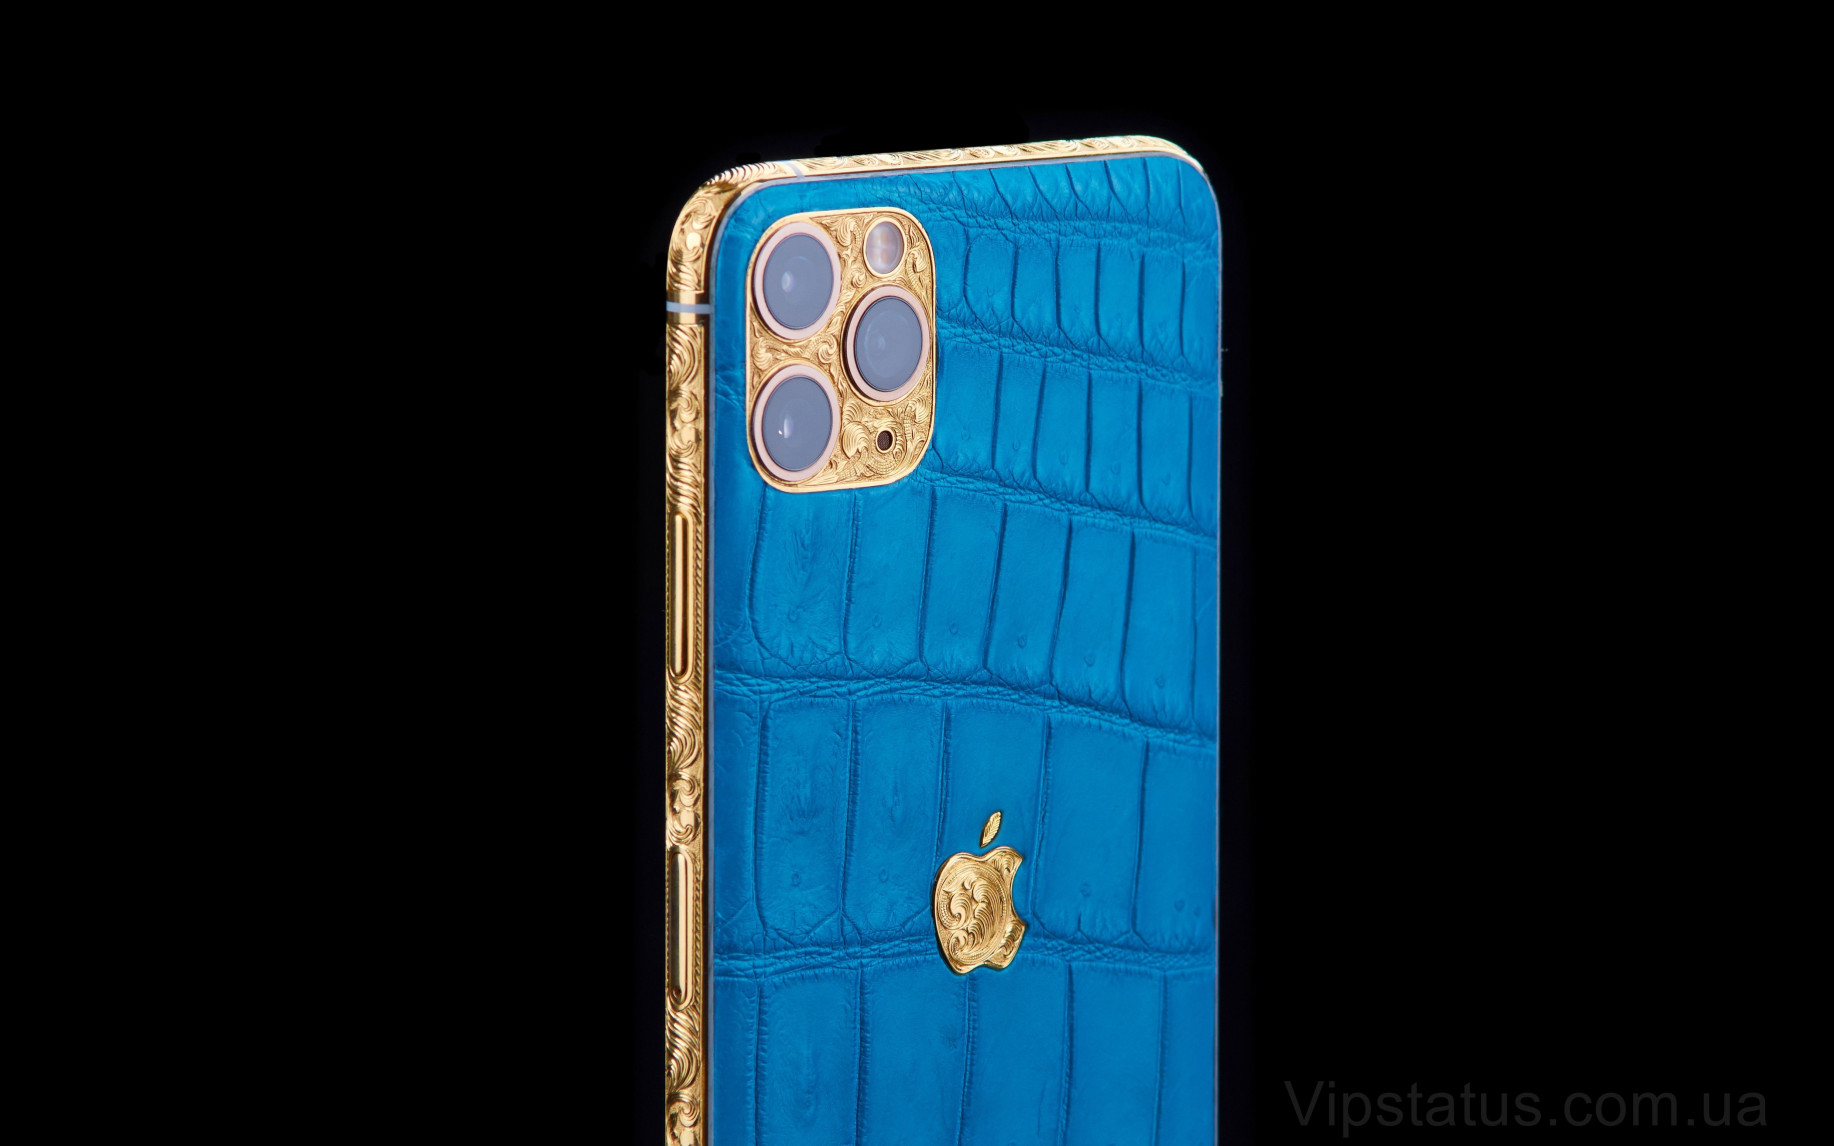 Elite Azure Queen IPHONE XS 512 GB Azure Queen IPHONE XS 512 GB image 2